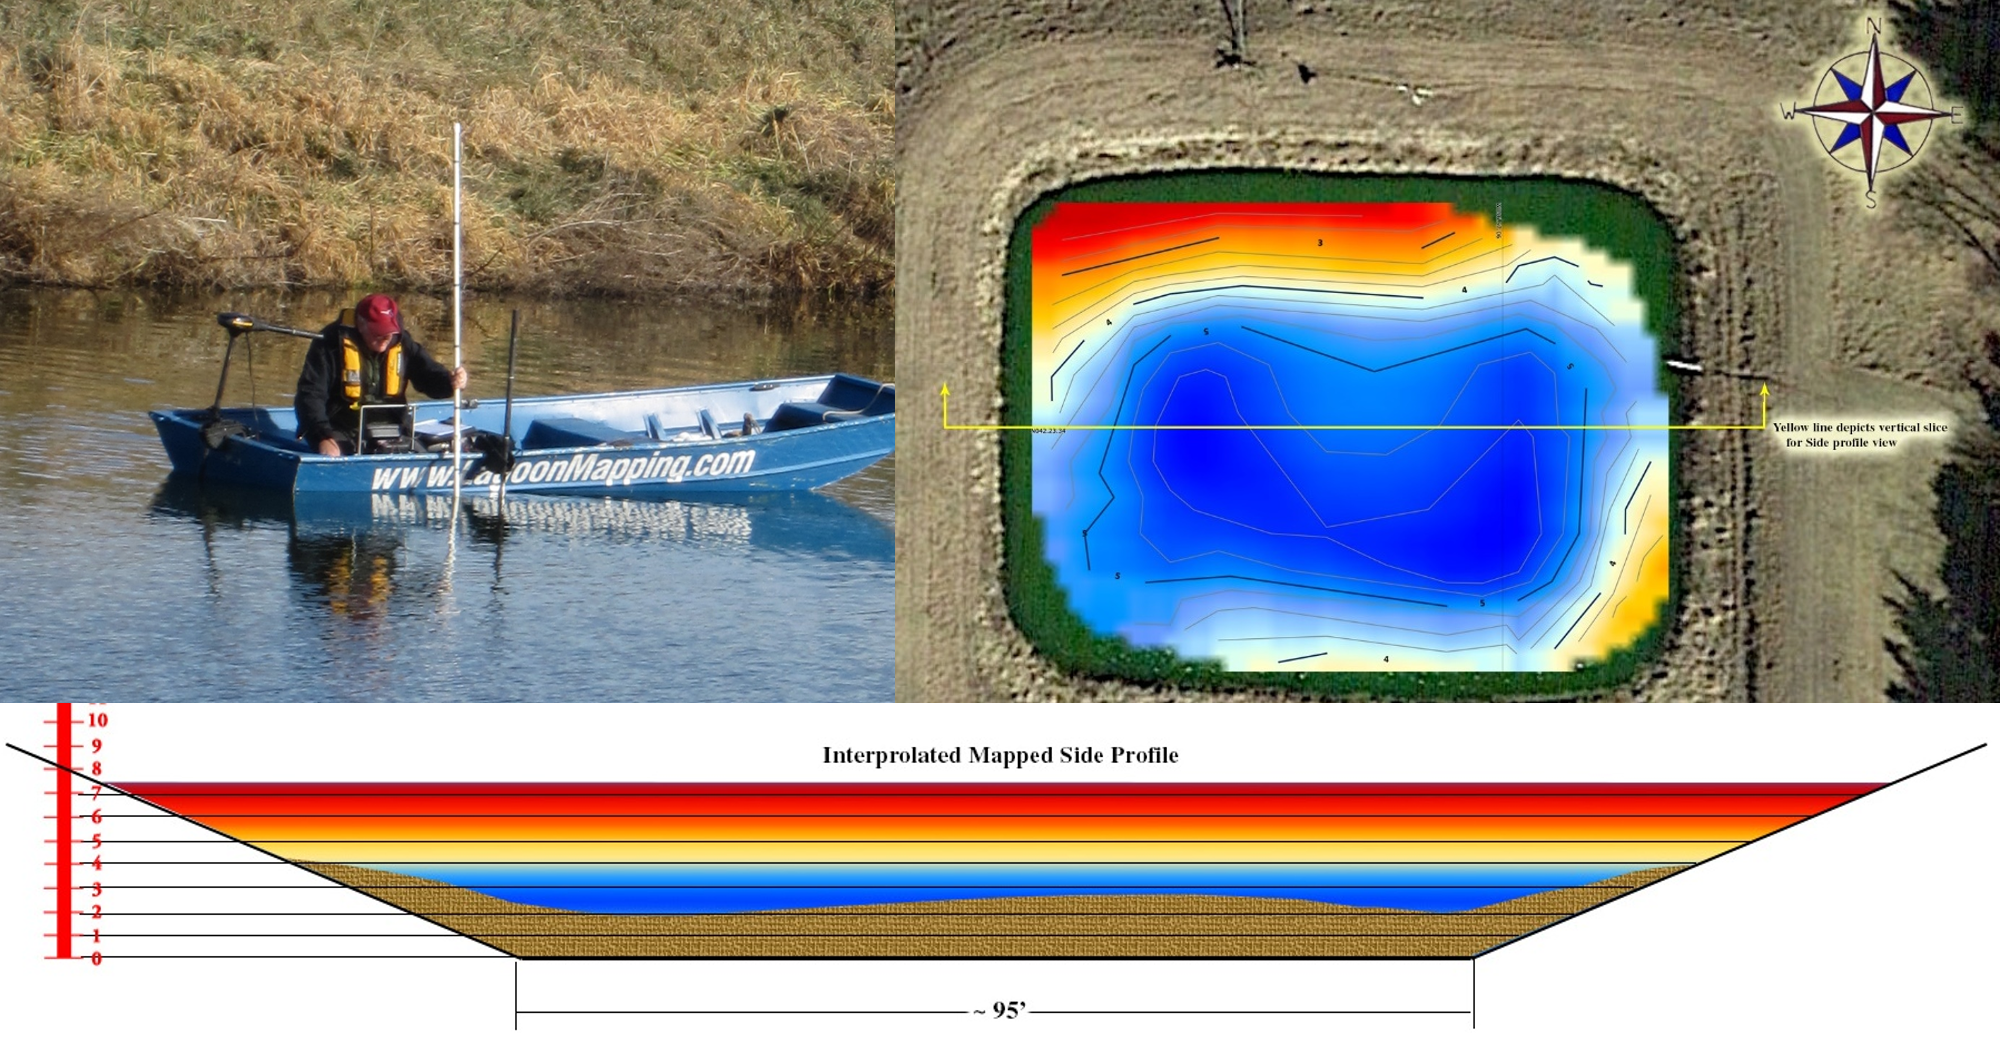 Figure 1. Sonar sludge mapping